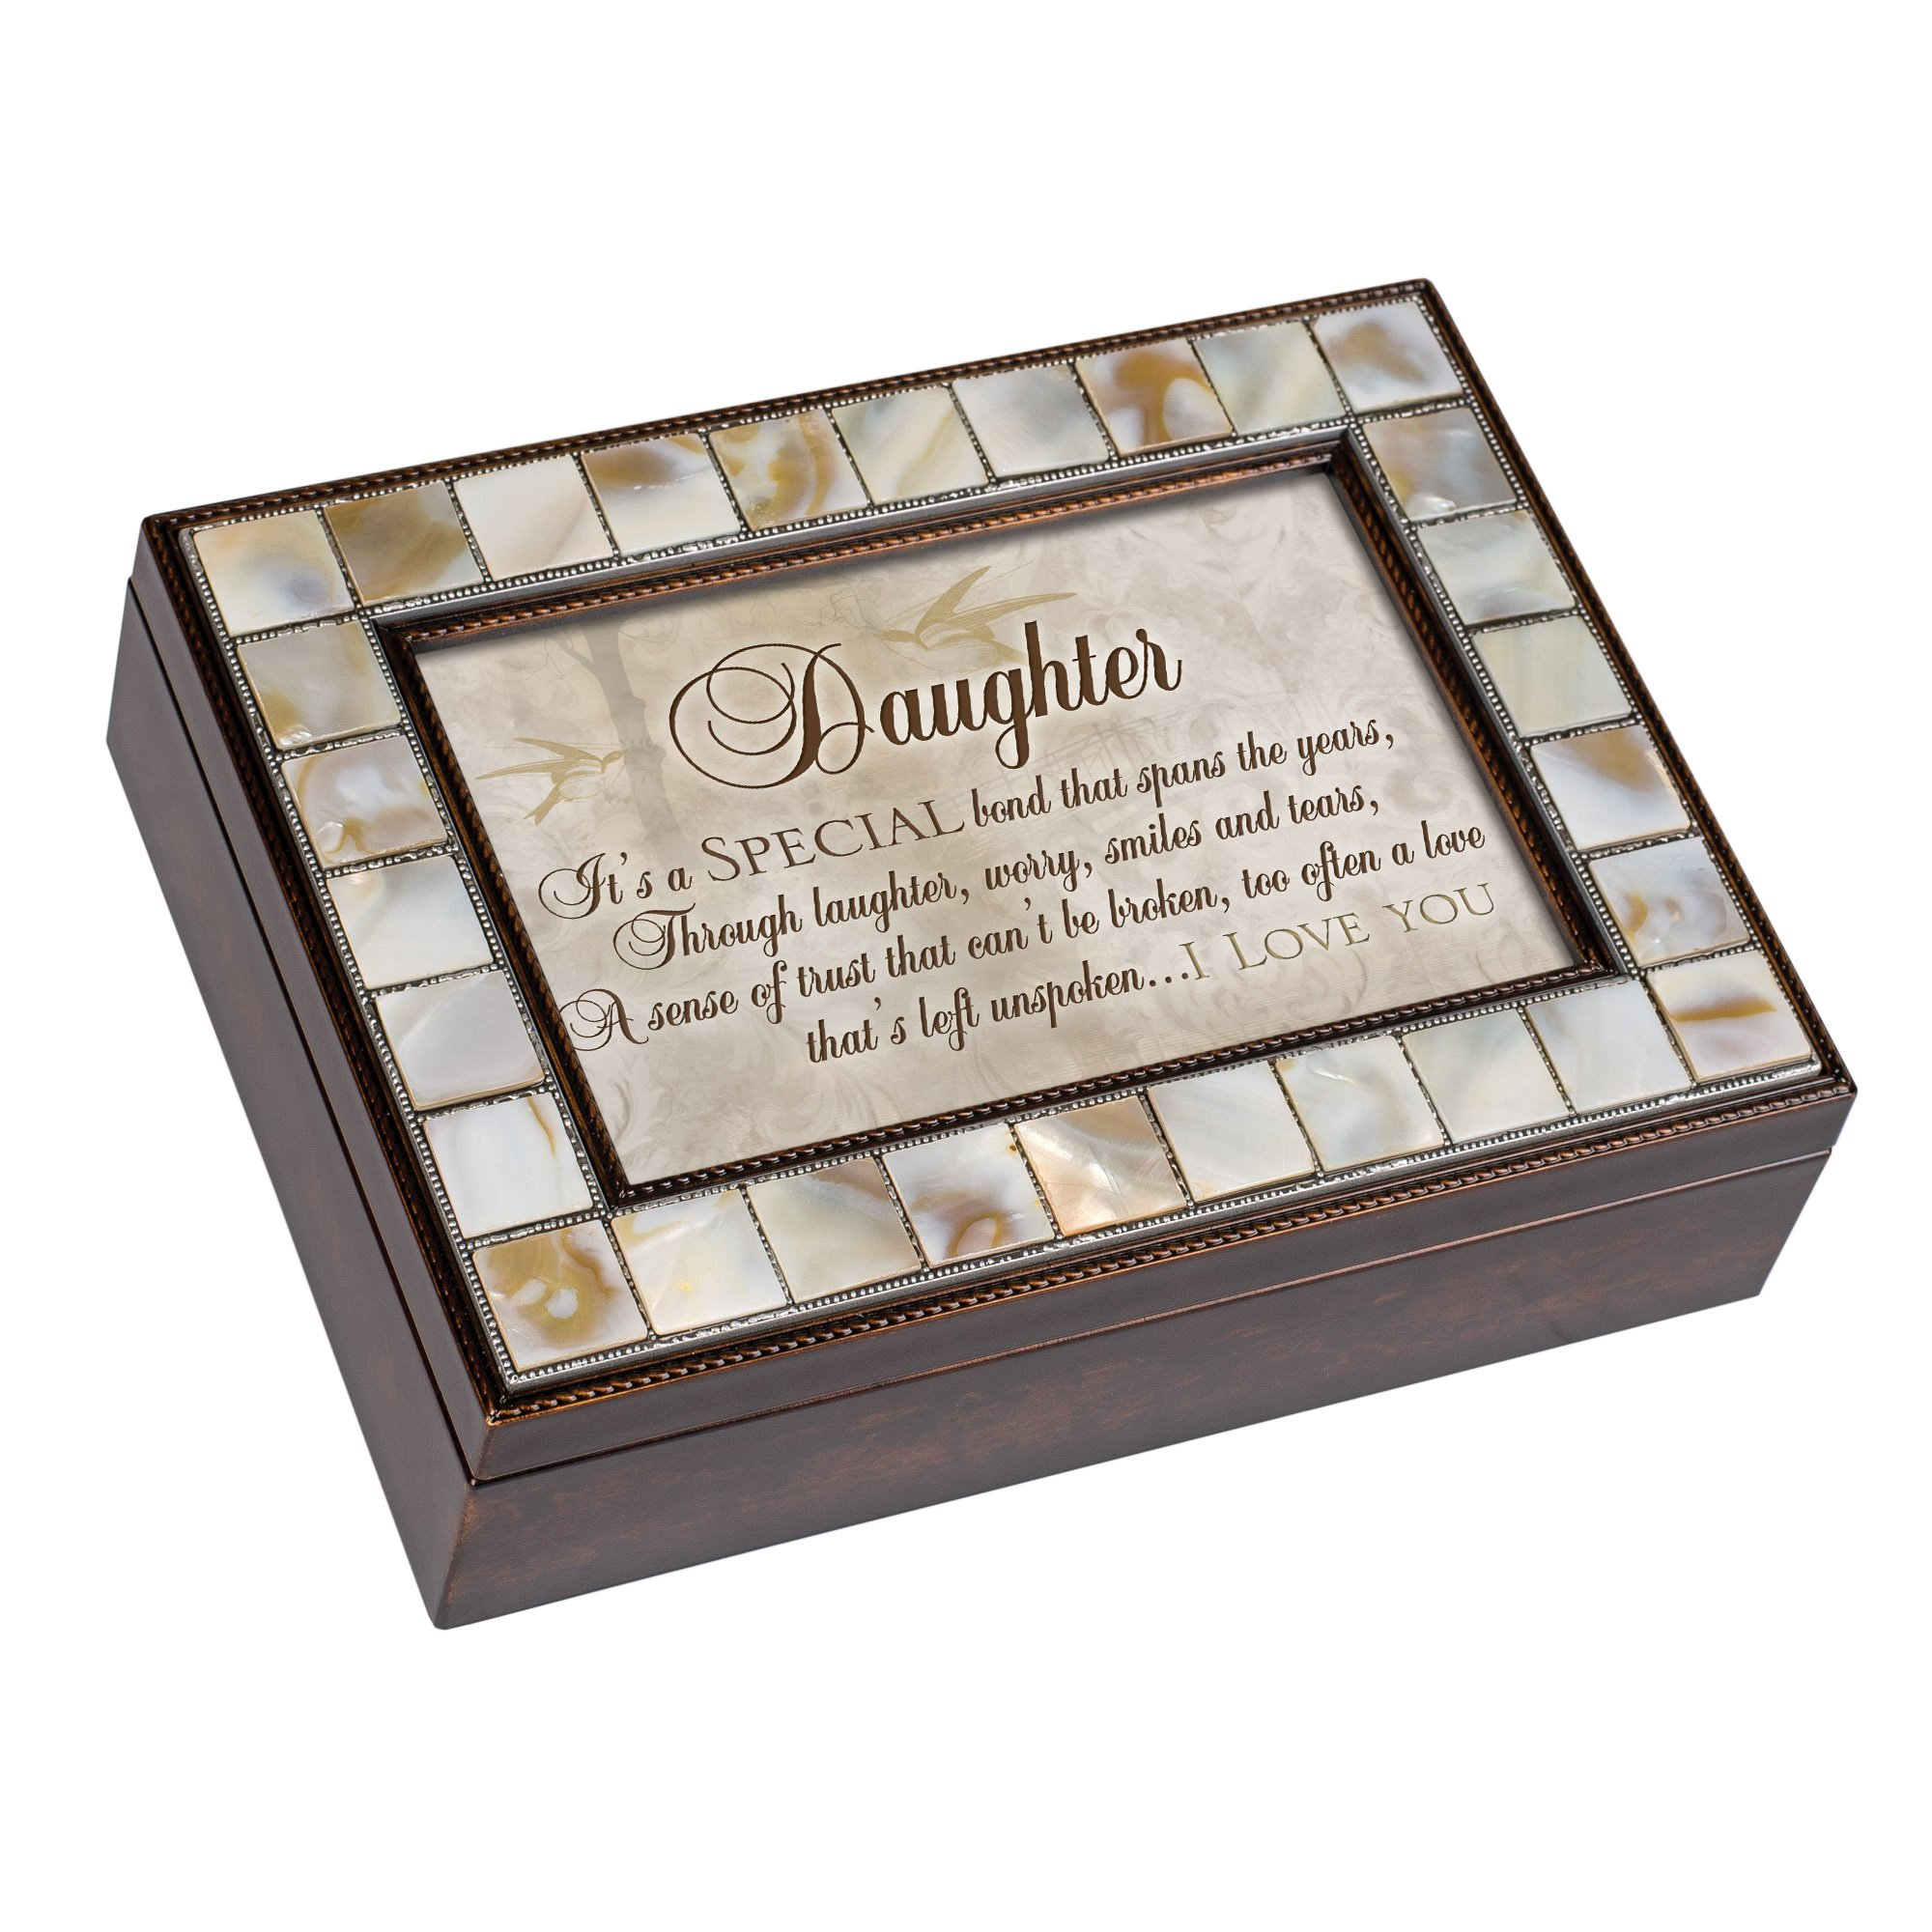 Cottage Garden Daughter Special Bond Mother of Pearl Amber Jewelry Music Box Plays You Light Up My Life